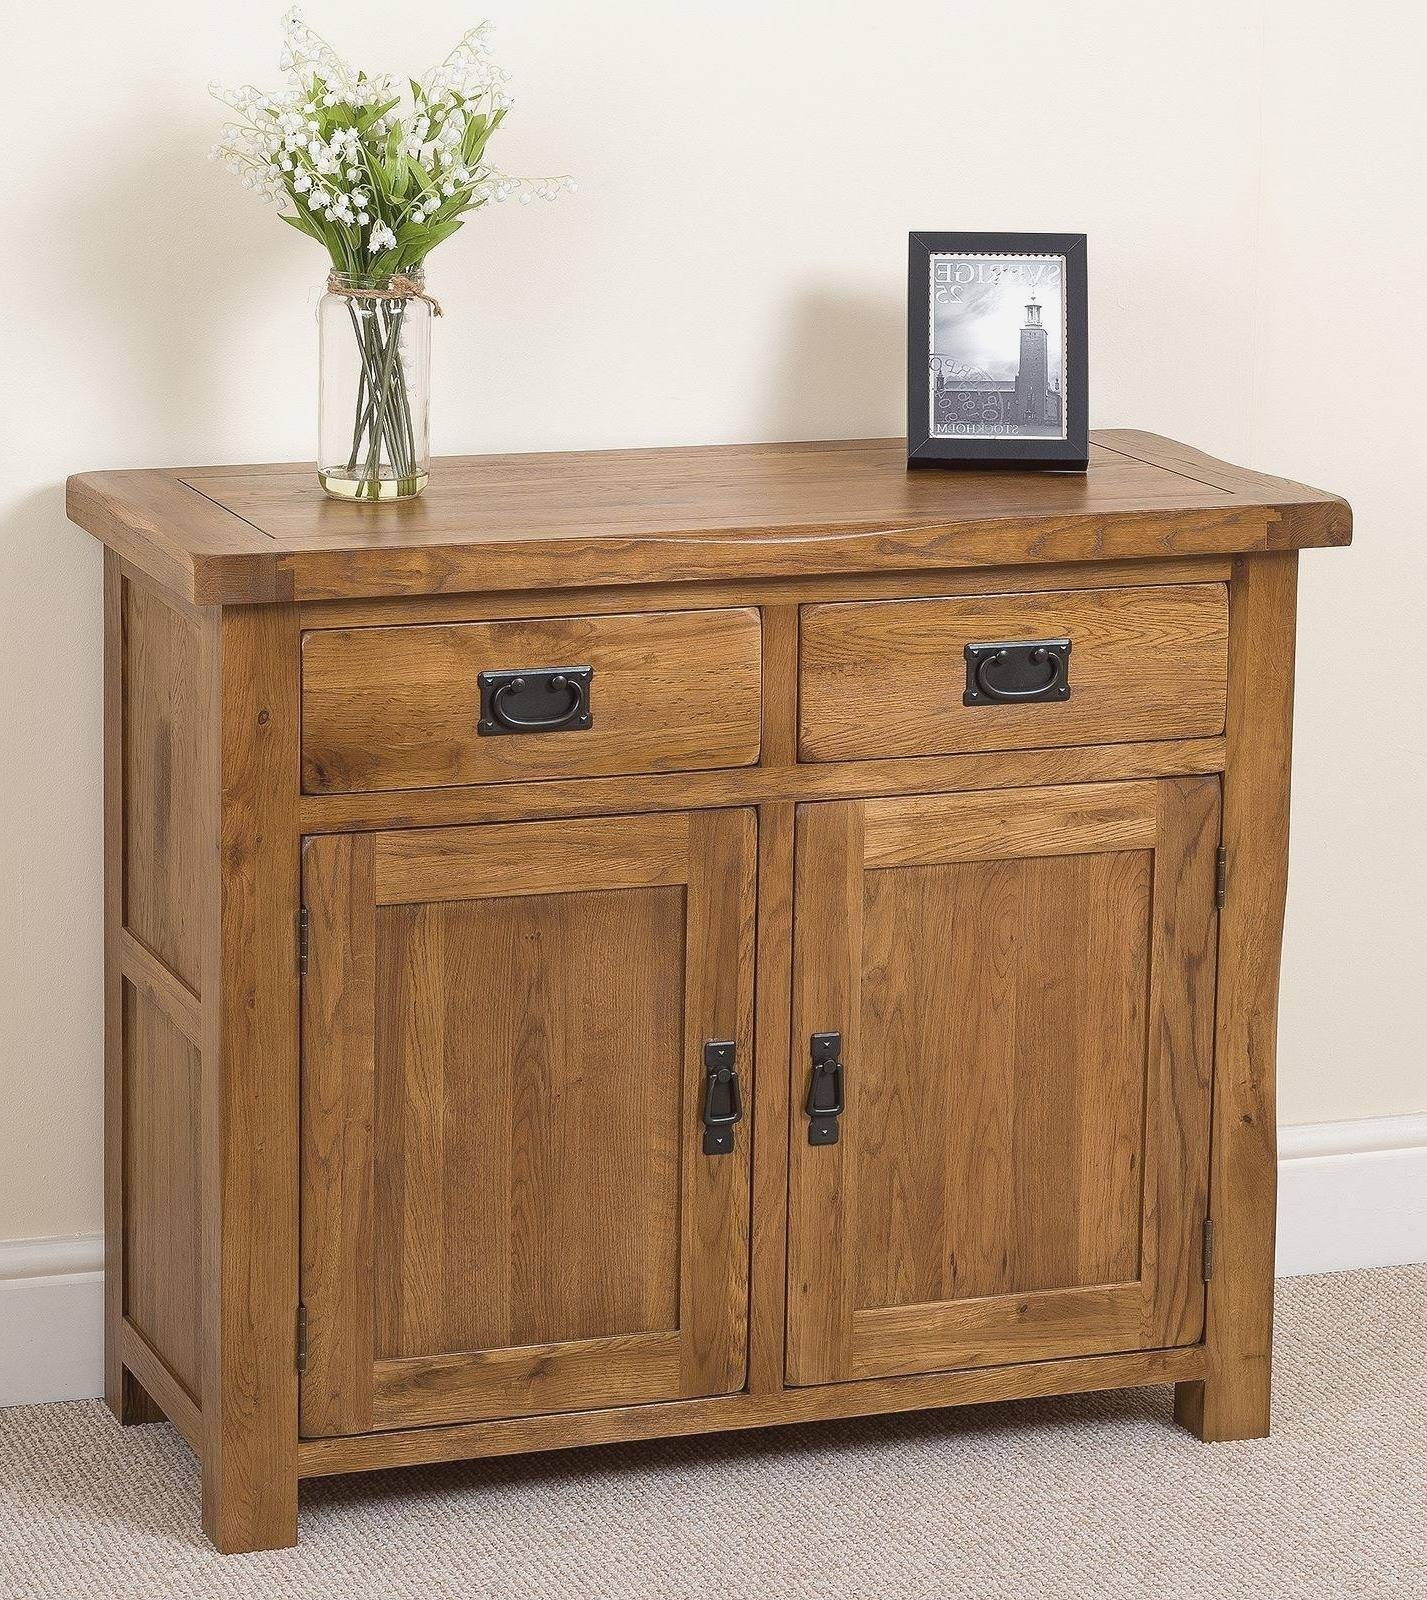 Solid Wood Sideboards And Buffets: Solid Wood Sideboards And With Regard To Real Wood Sideboards (View 12 of 15)